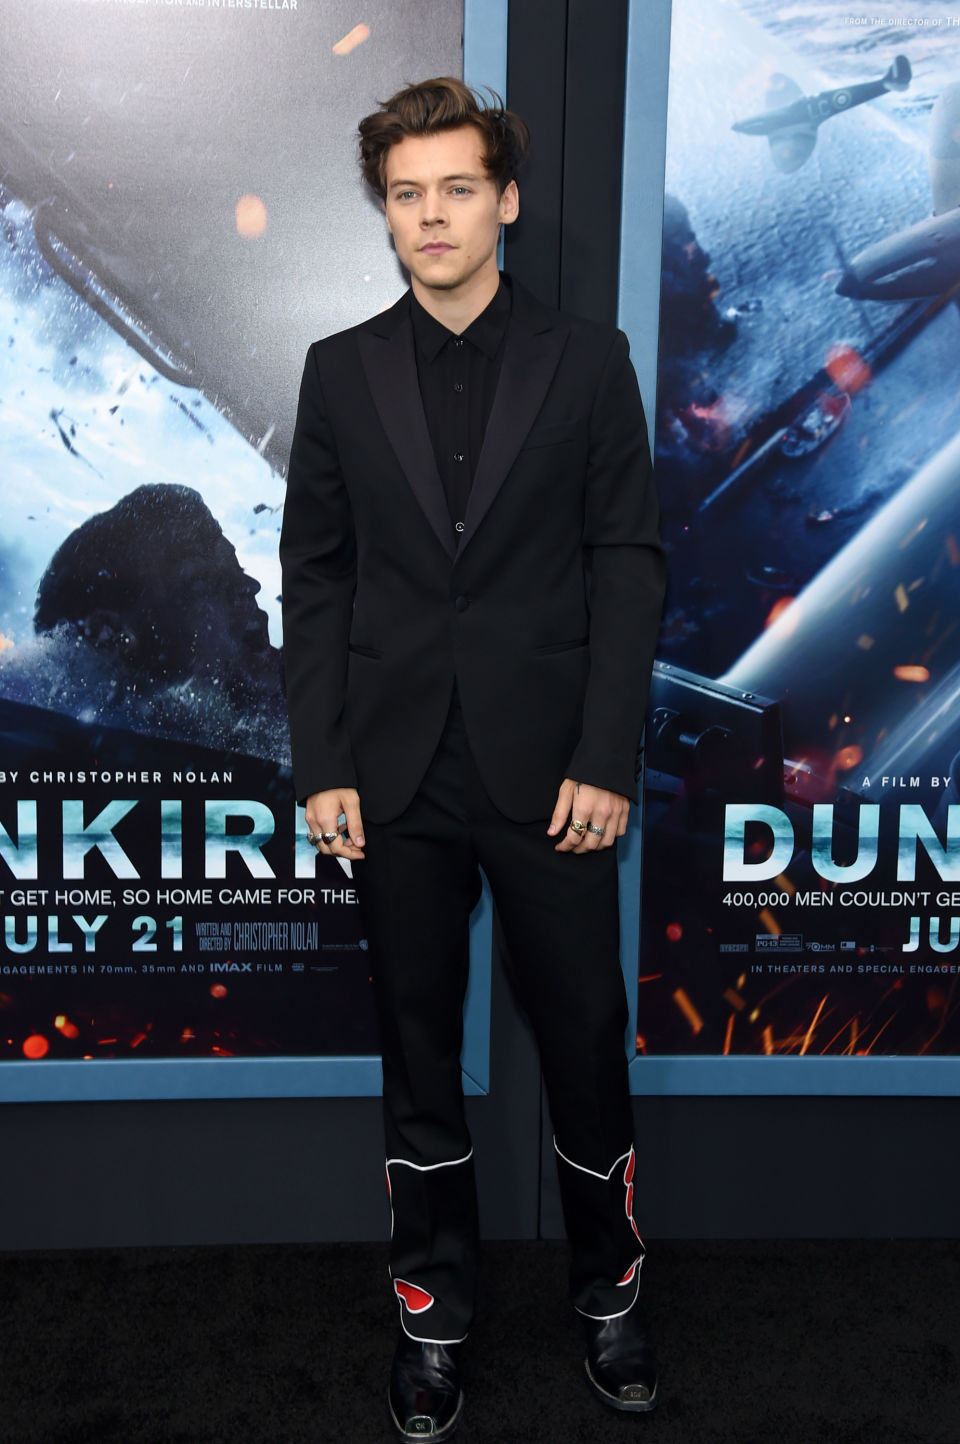 stylesharry-calvin-klein-205w39nyc-dunkirk-nyc-premiere-071817_ph_getty-images-global-6-mos